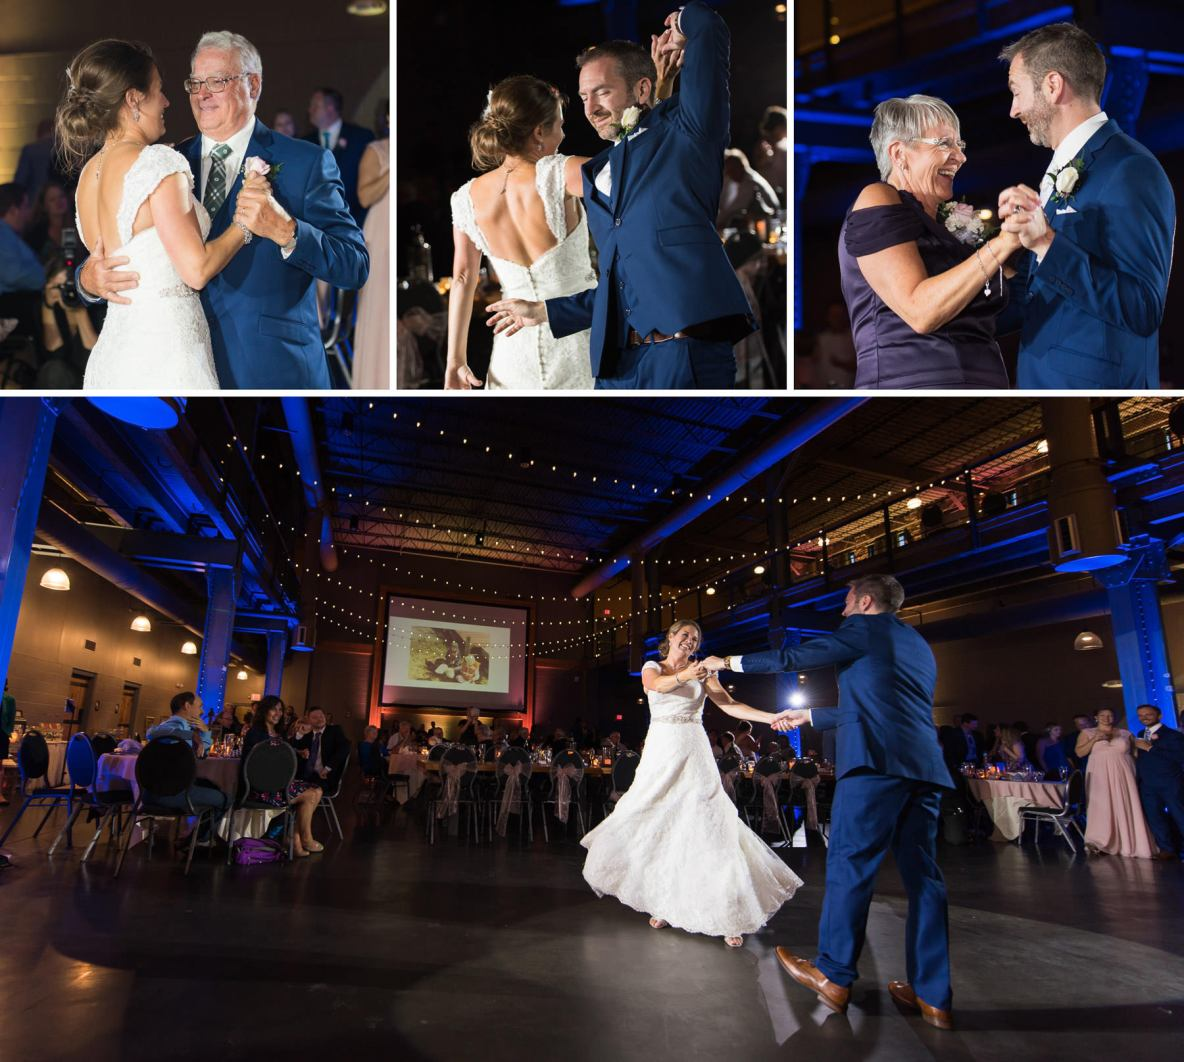 Photos of the bride and groom dancing on their wedding night.